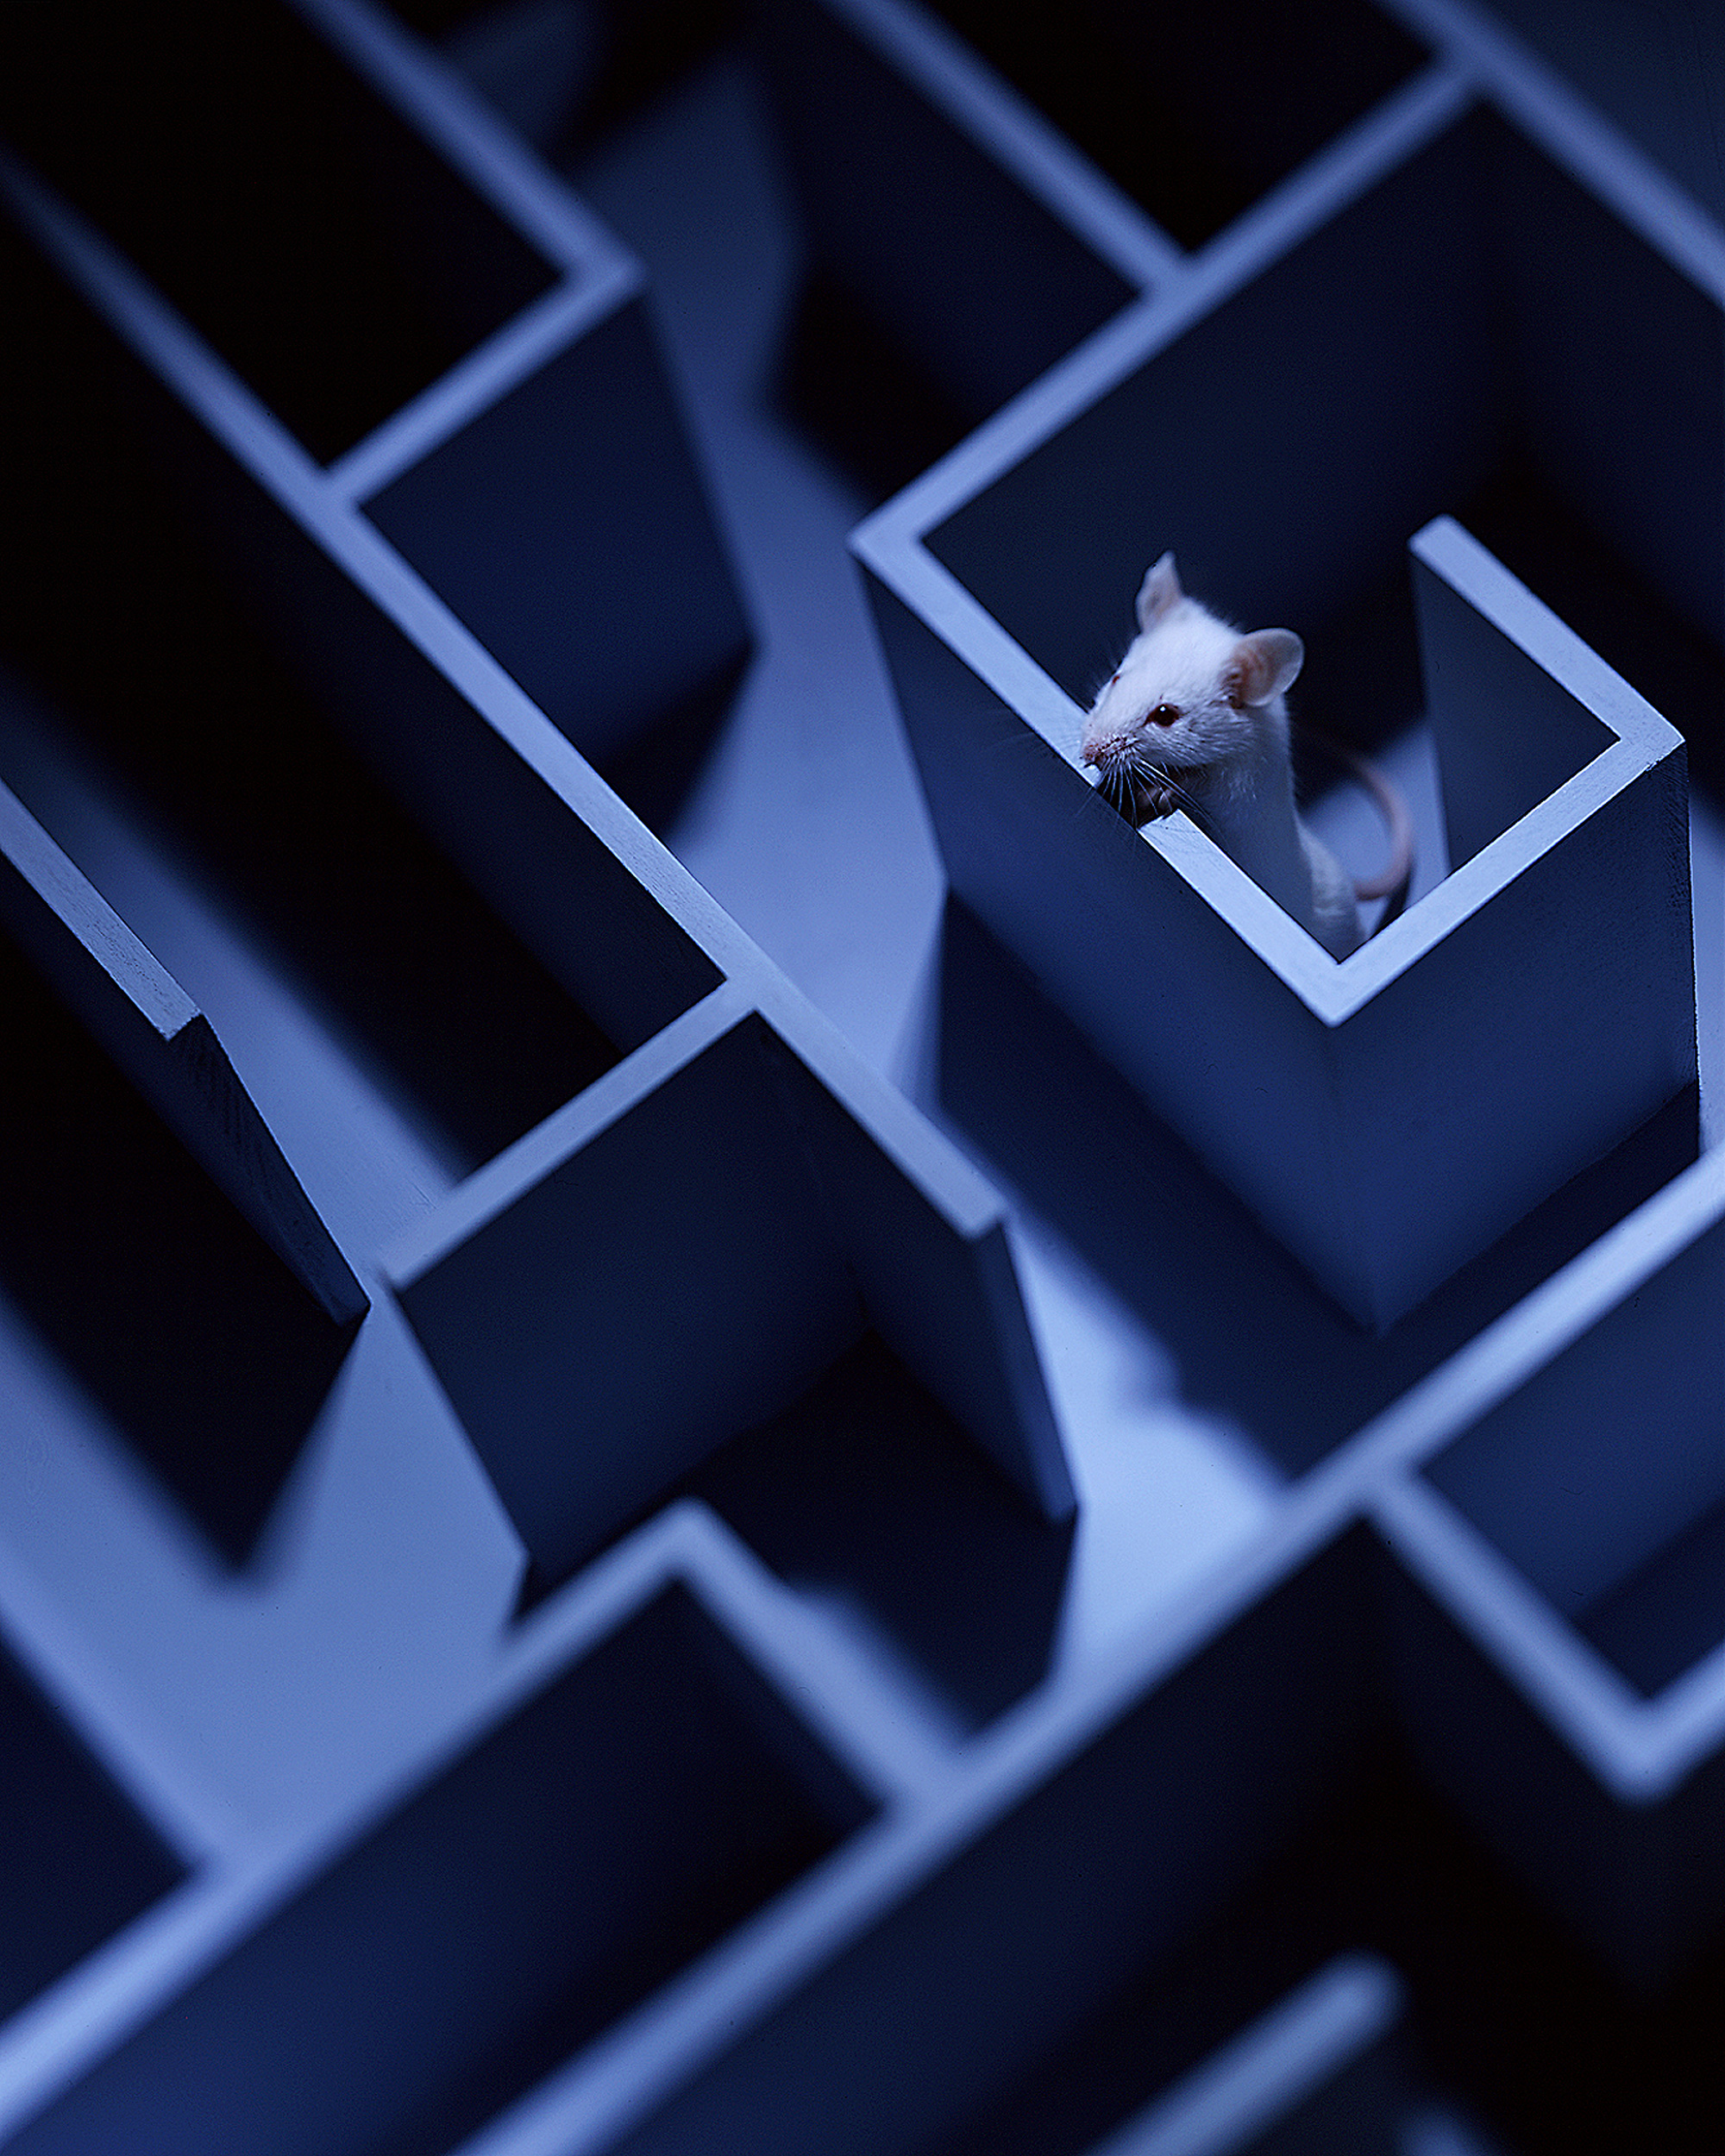 Mouse-in-Maze-2-copy.jpg